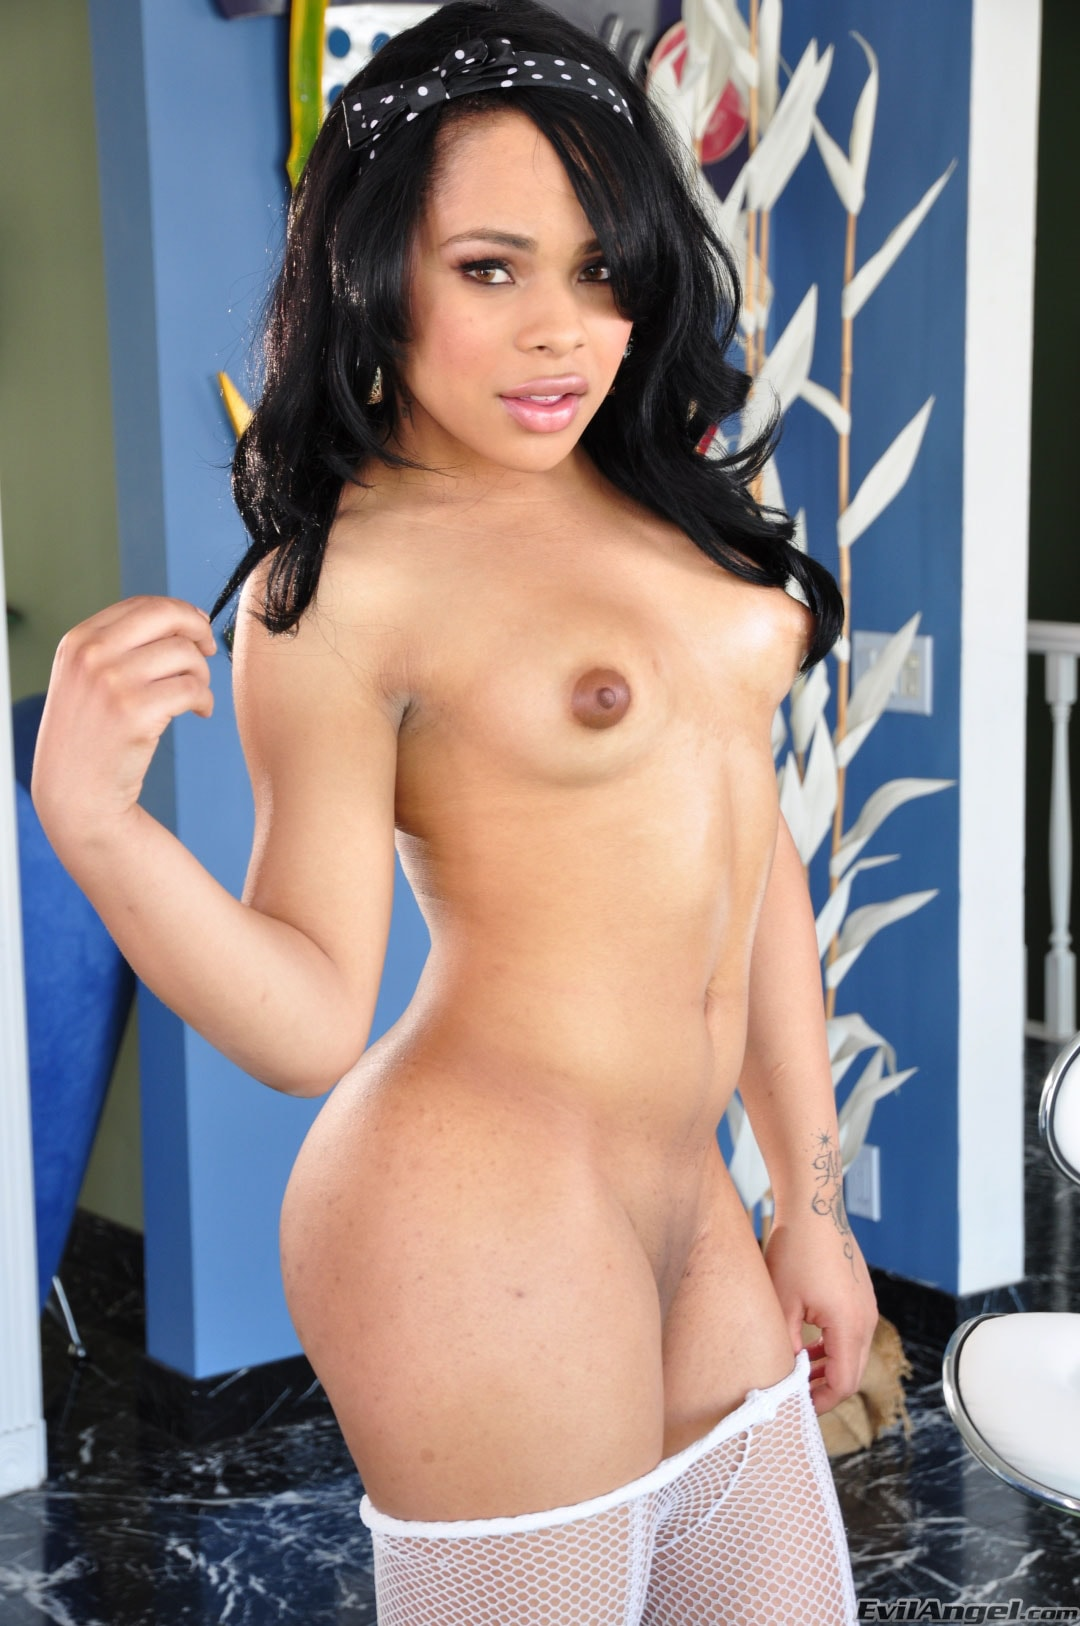 I Love Black Shemales 'The Next She-male Idol 02' starring Naughty Nadia (Photo 18)